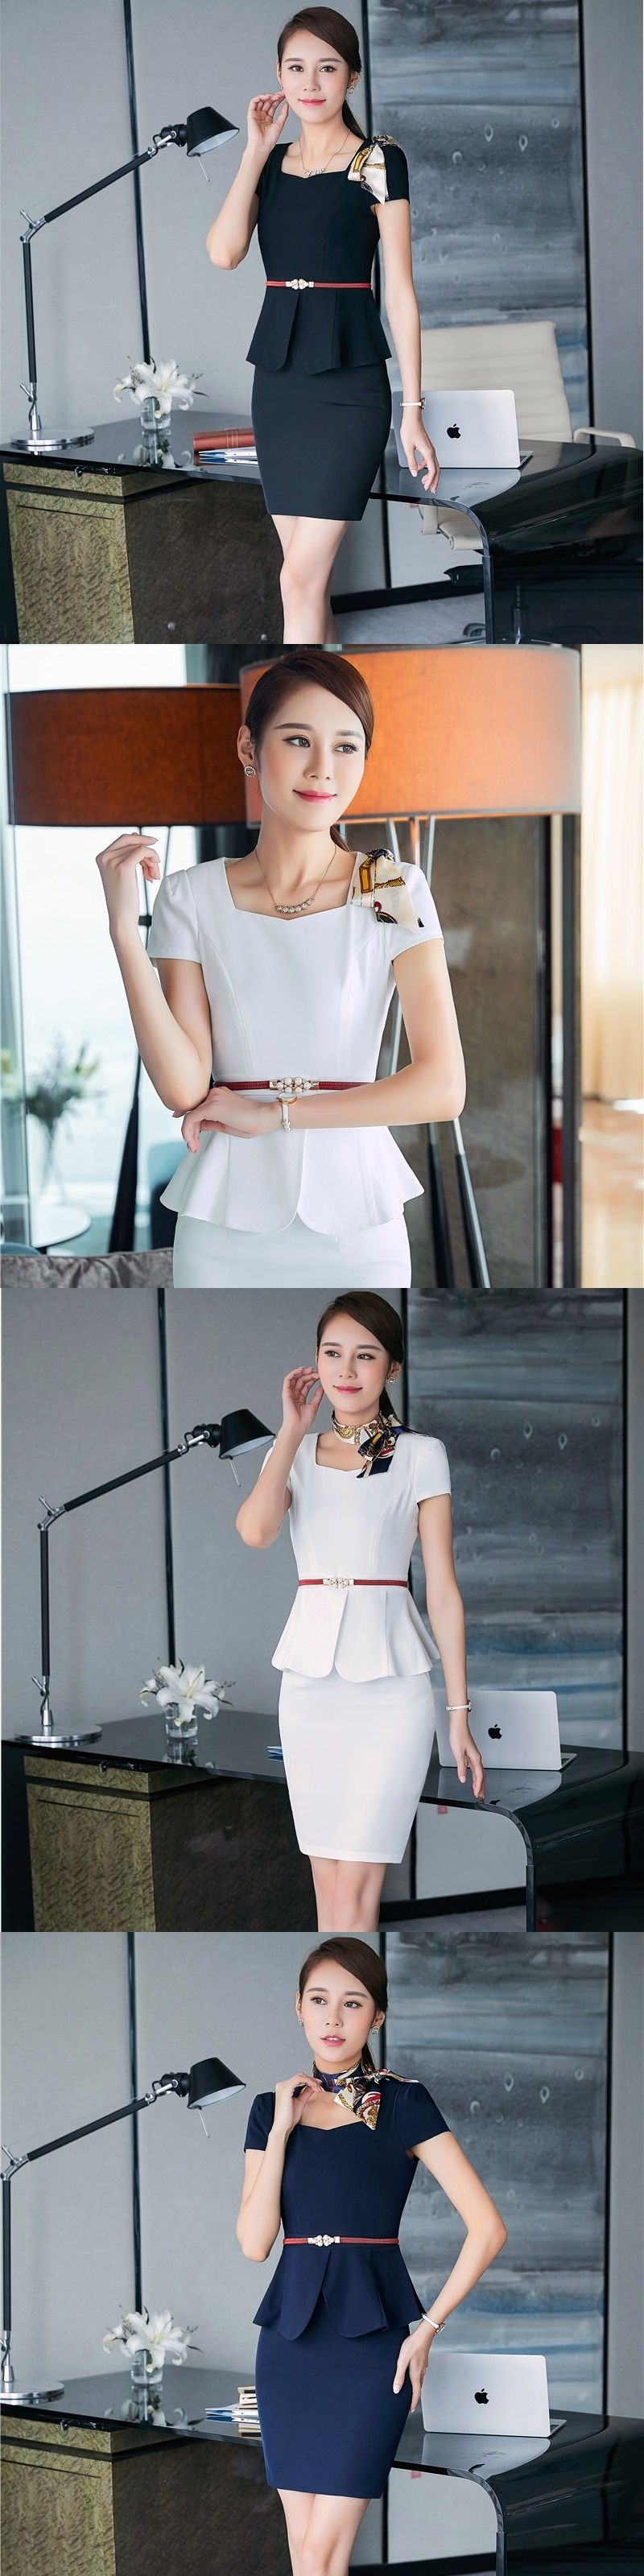 8a9b7a62d879 Summer Work Suits With 2 Pieces Tops And Skirt Professional Business Women  Ladies Blazers Outfits Plus